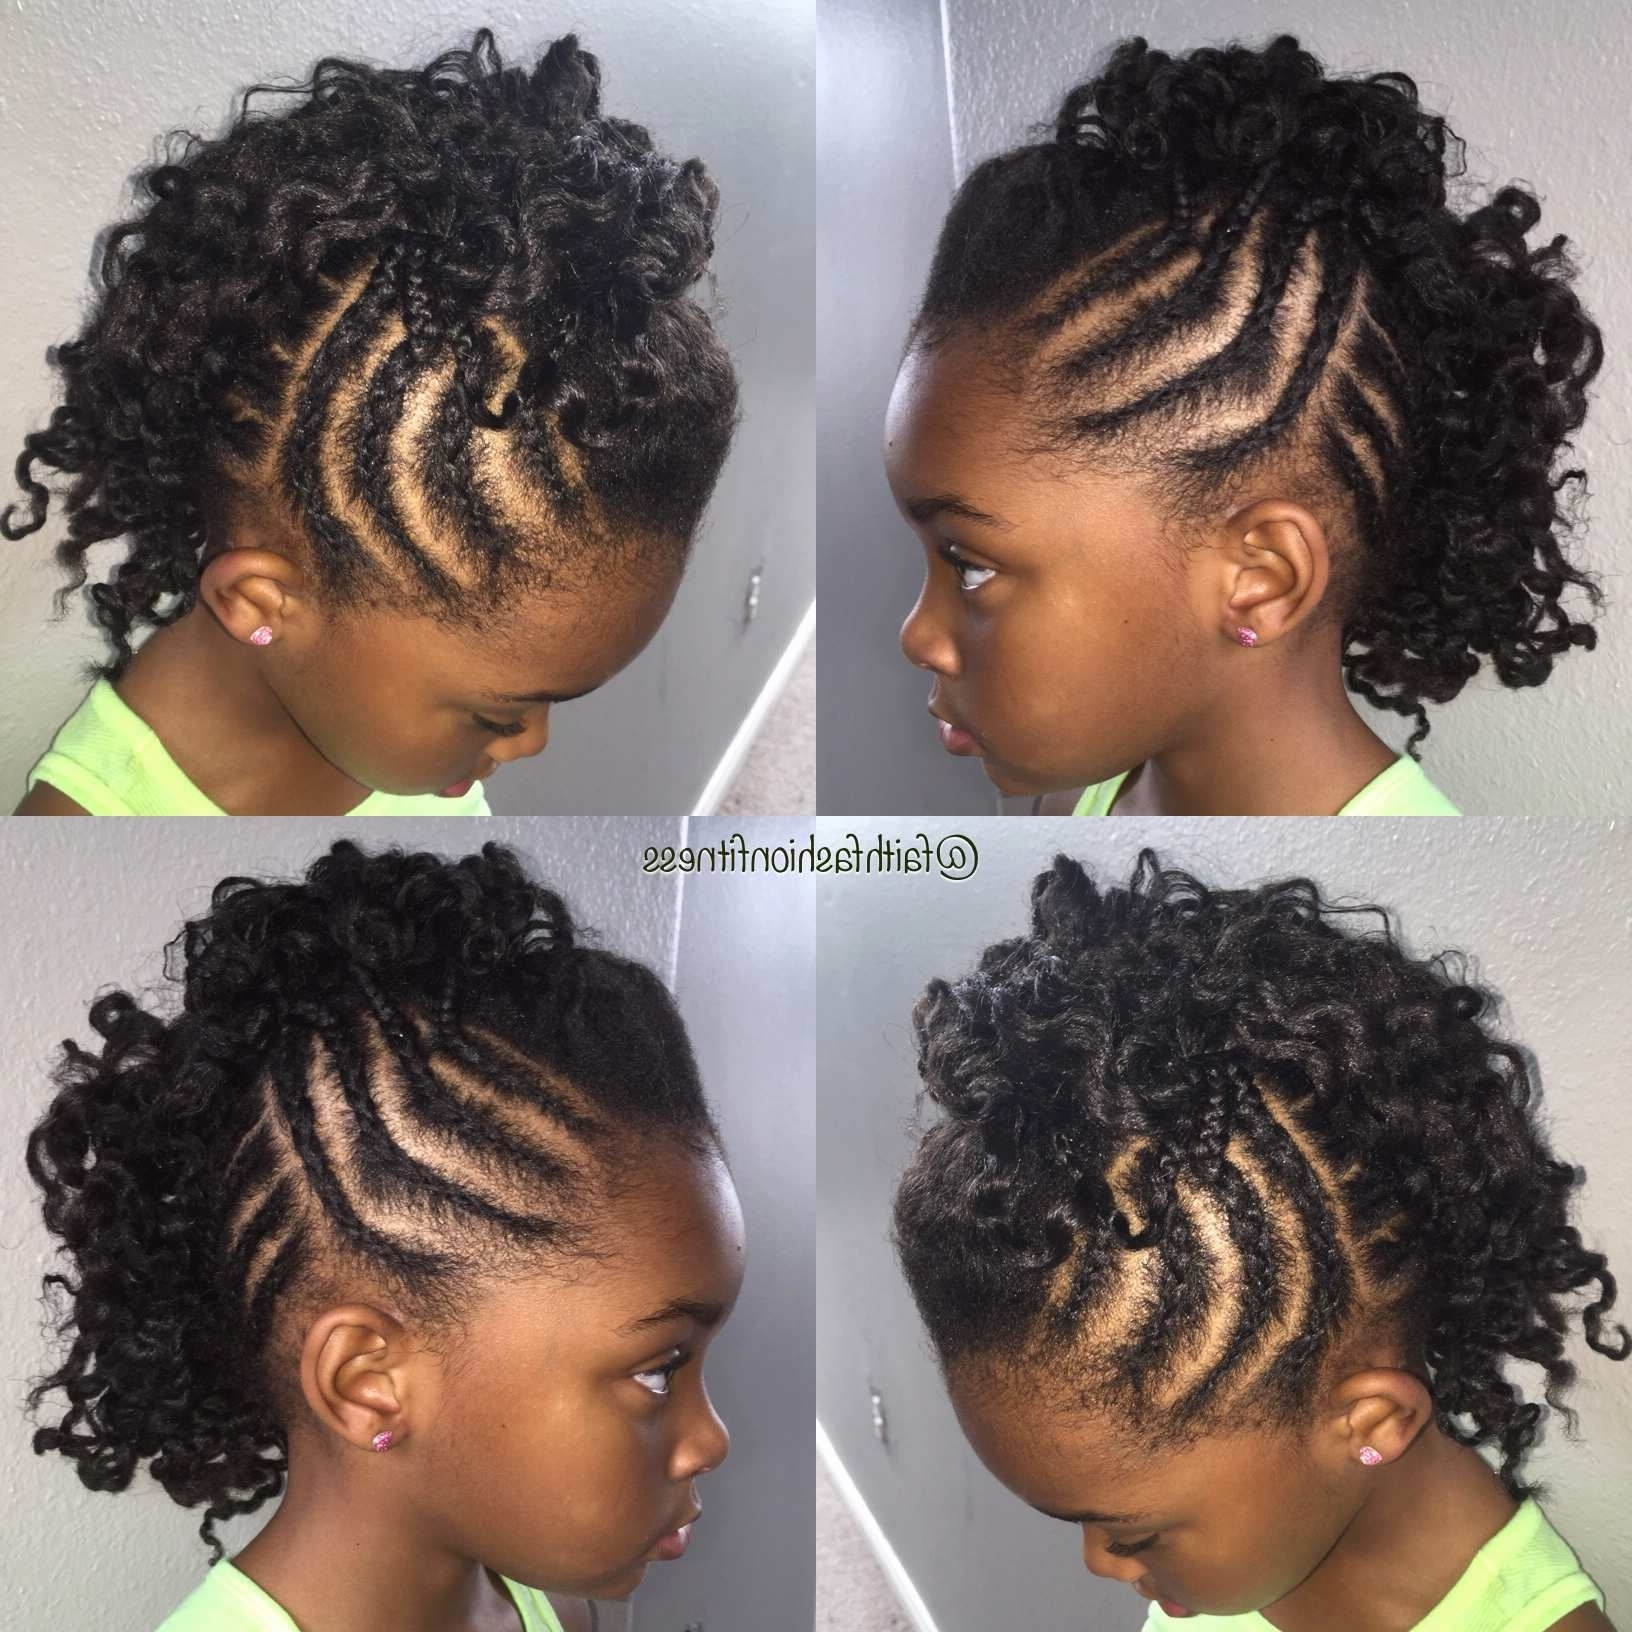 African Hairstyles For Kids New Natural Hairstyle For Girls Mohawk Intended For Fashionable Natural Cornrows And Twist Hairstyles (View 1 of 15)